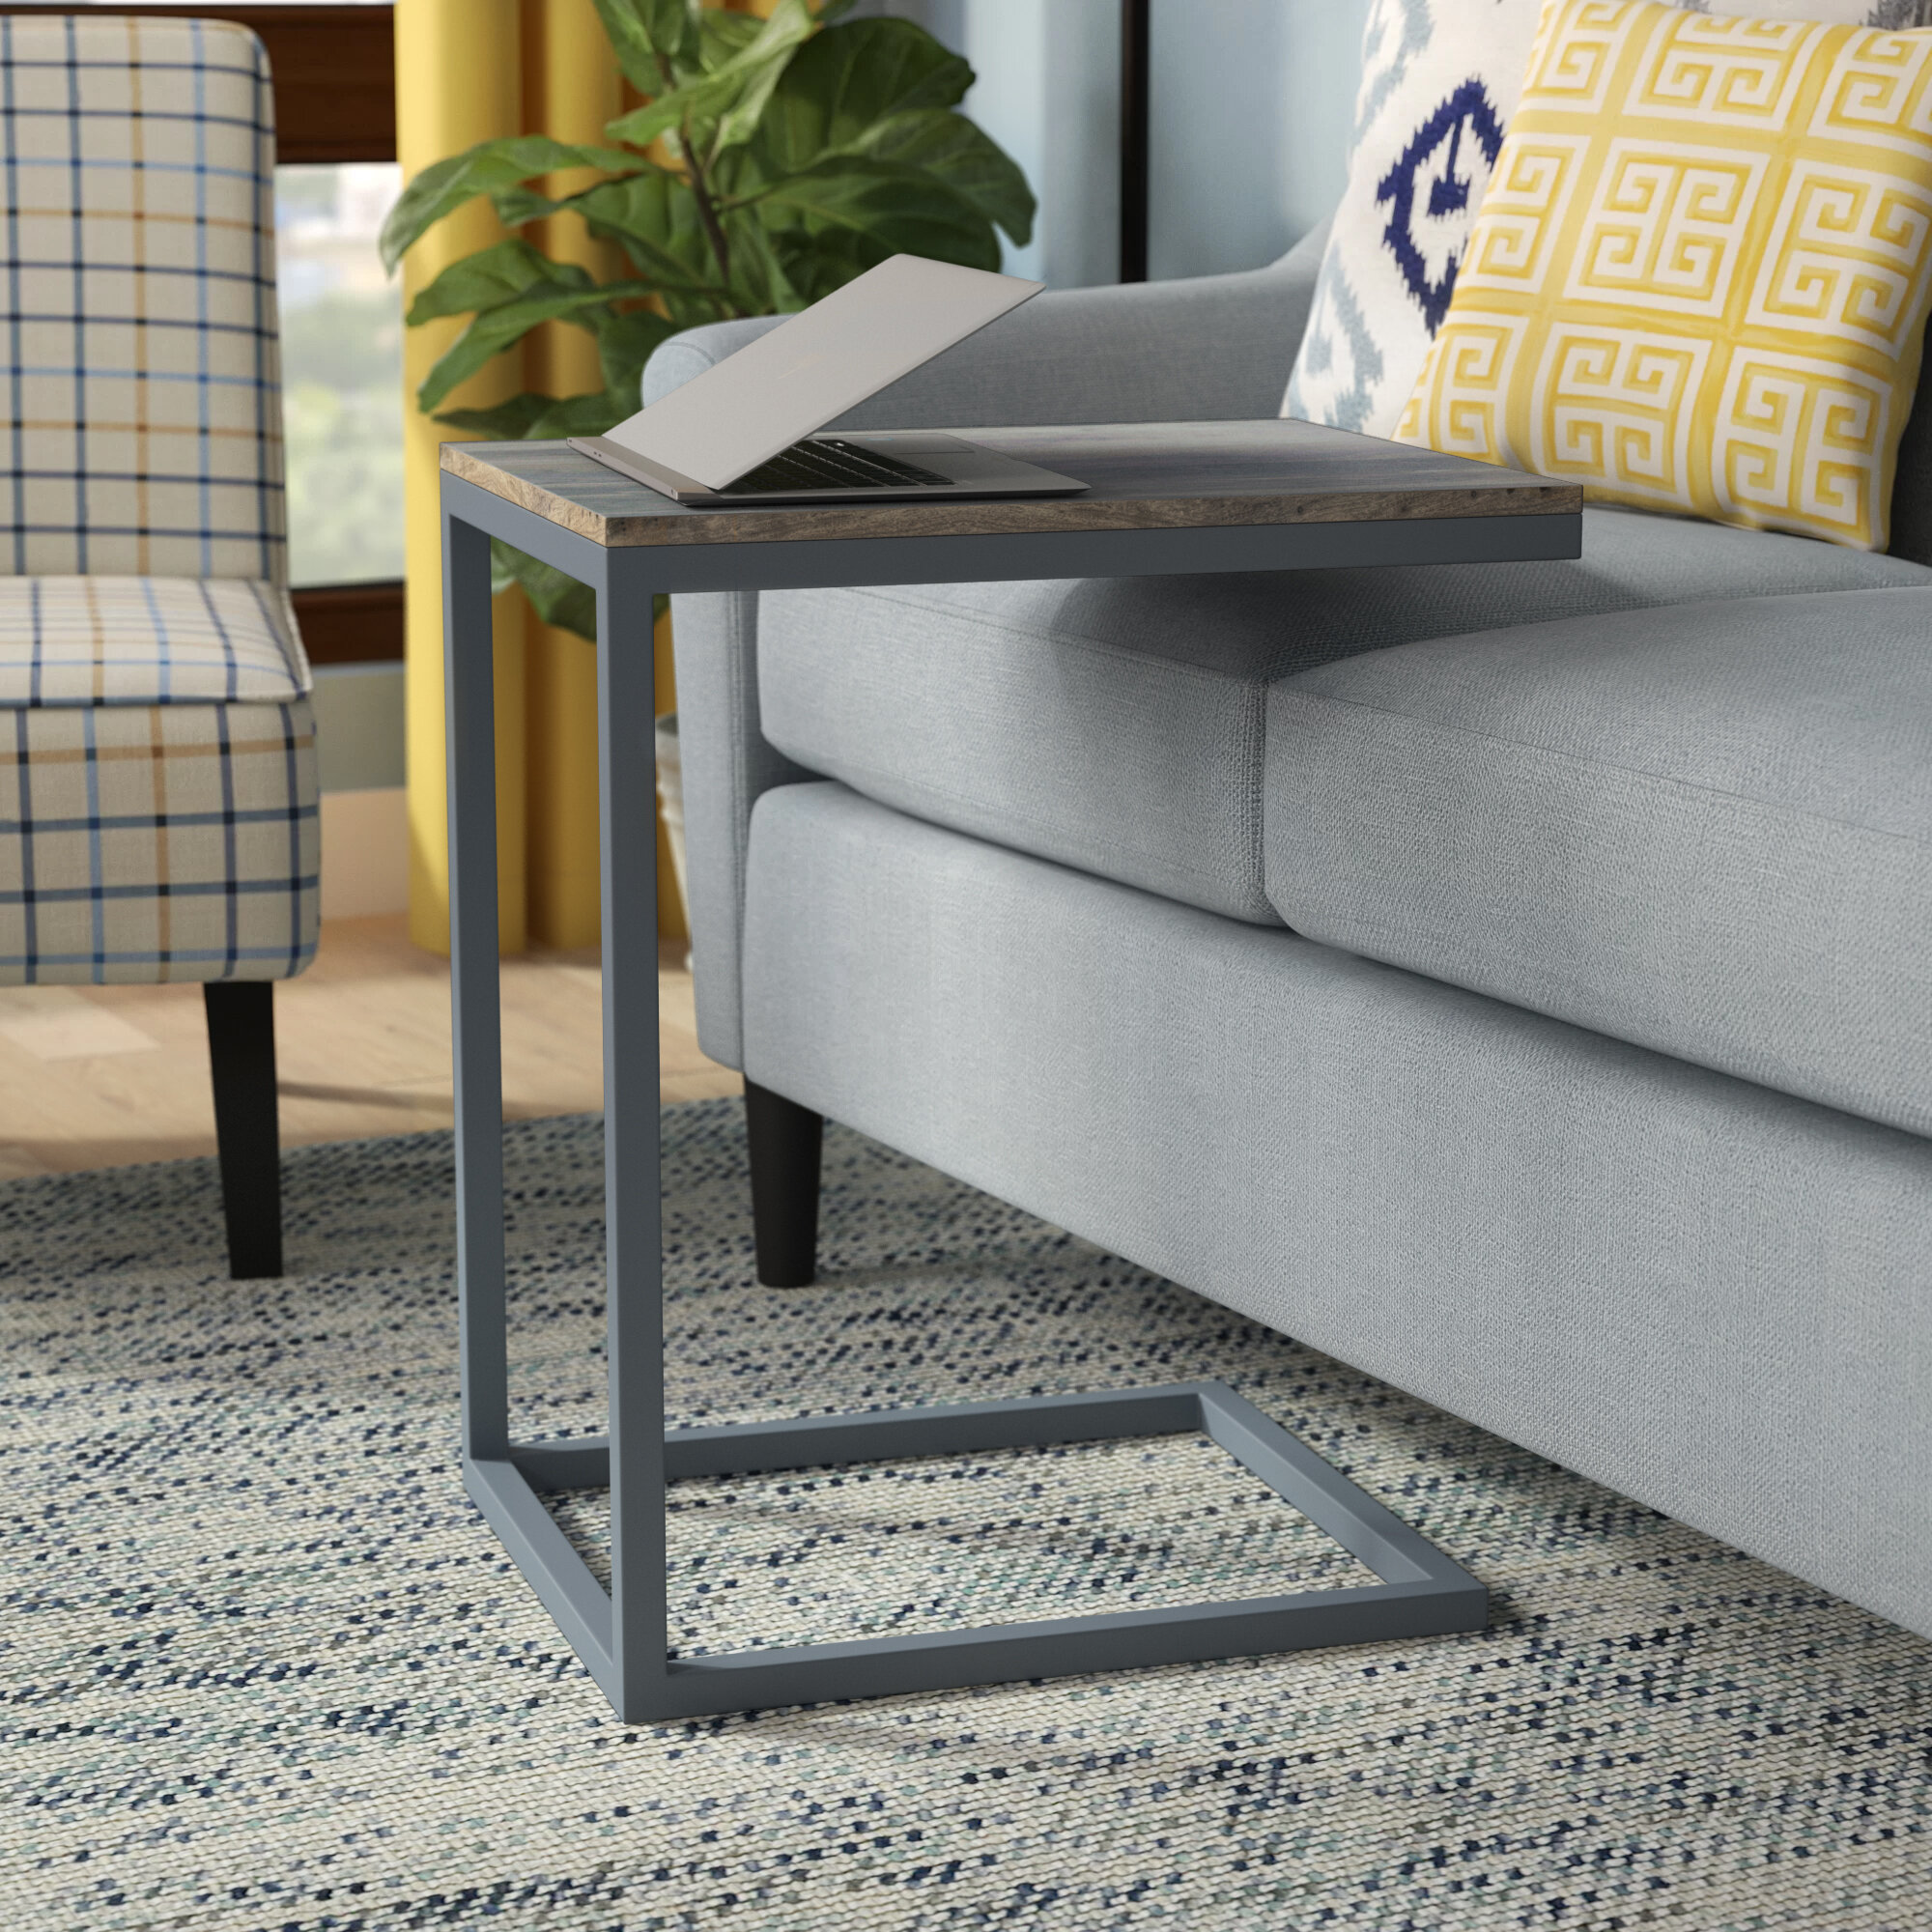 Ivy Bronx Cassidy C End Table Reviews Wayfair